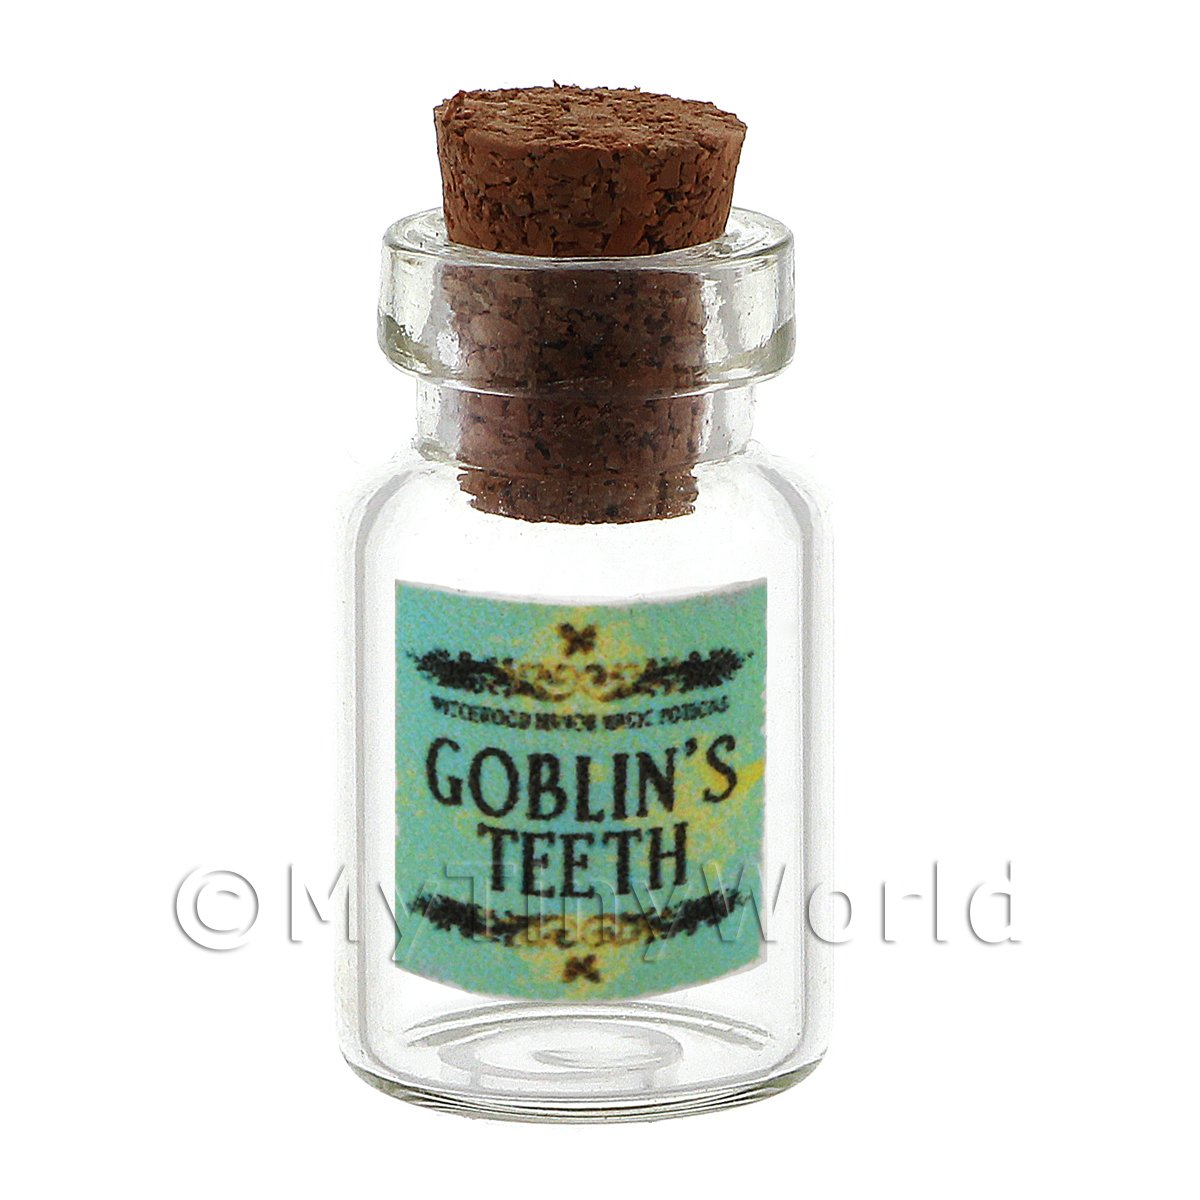 Dolls House Miniature Goblins Teeth Magic Storage Jar  (Style 2)